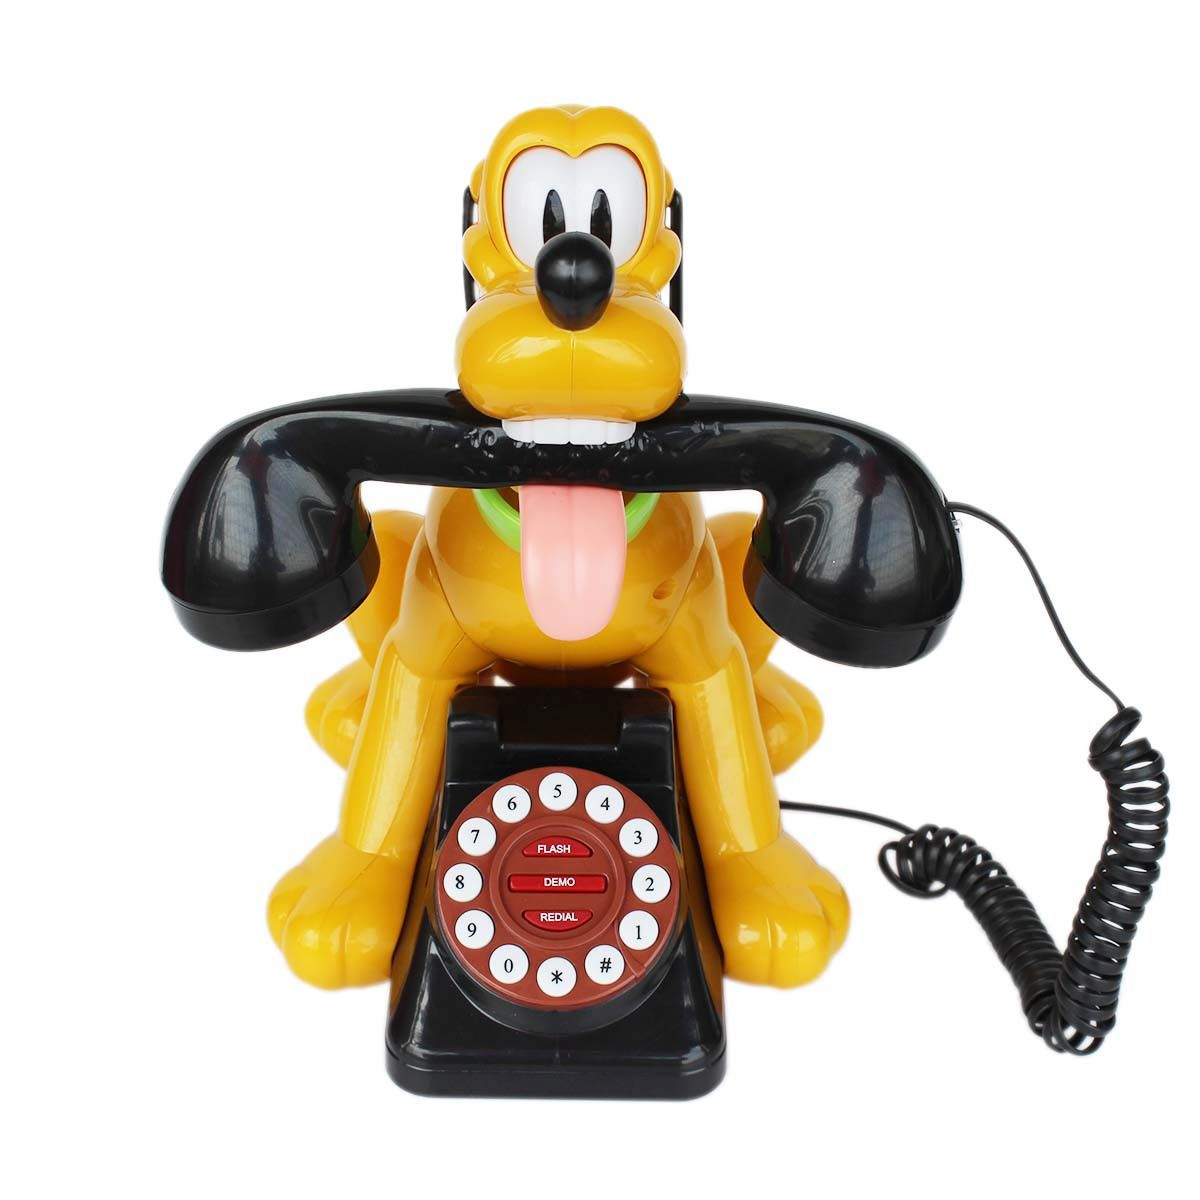 animal dog shaped wired telephone landline phone 1m212 yellow landlinephone cartoontelephone homedecor fancyphones telephone [ 1200 x 1200 Pixel ]